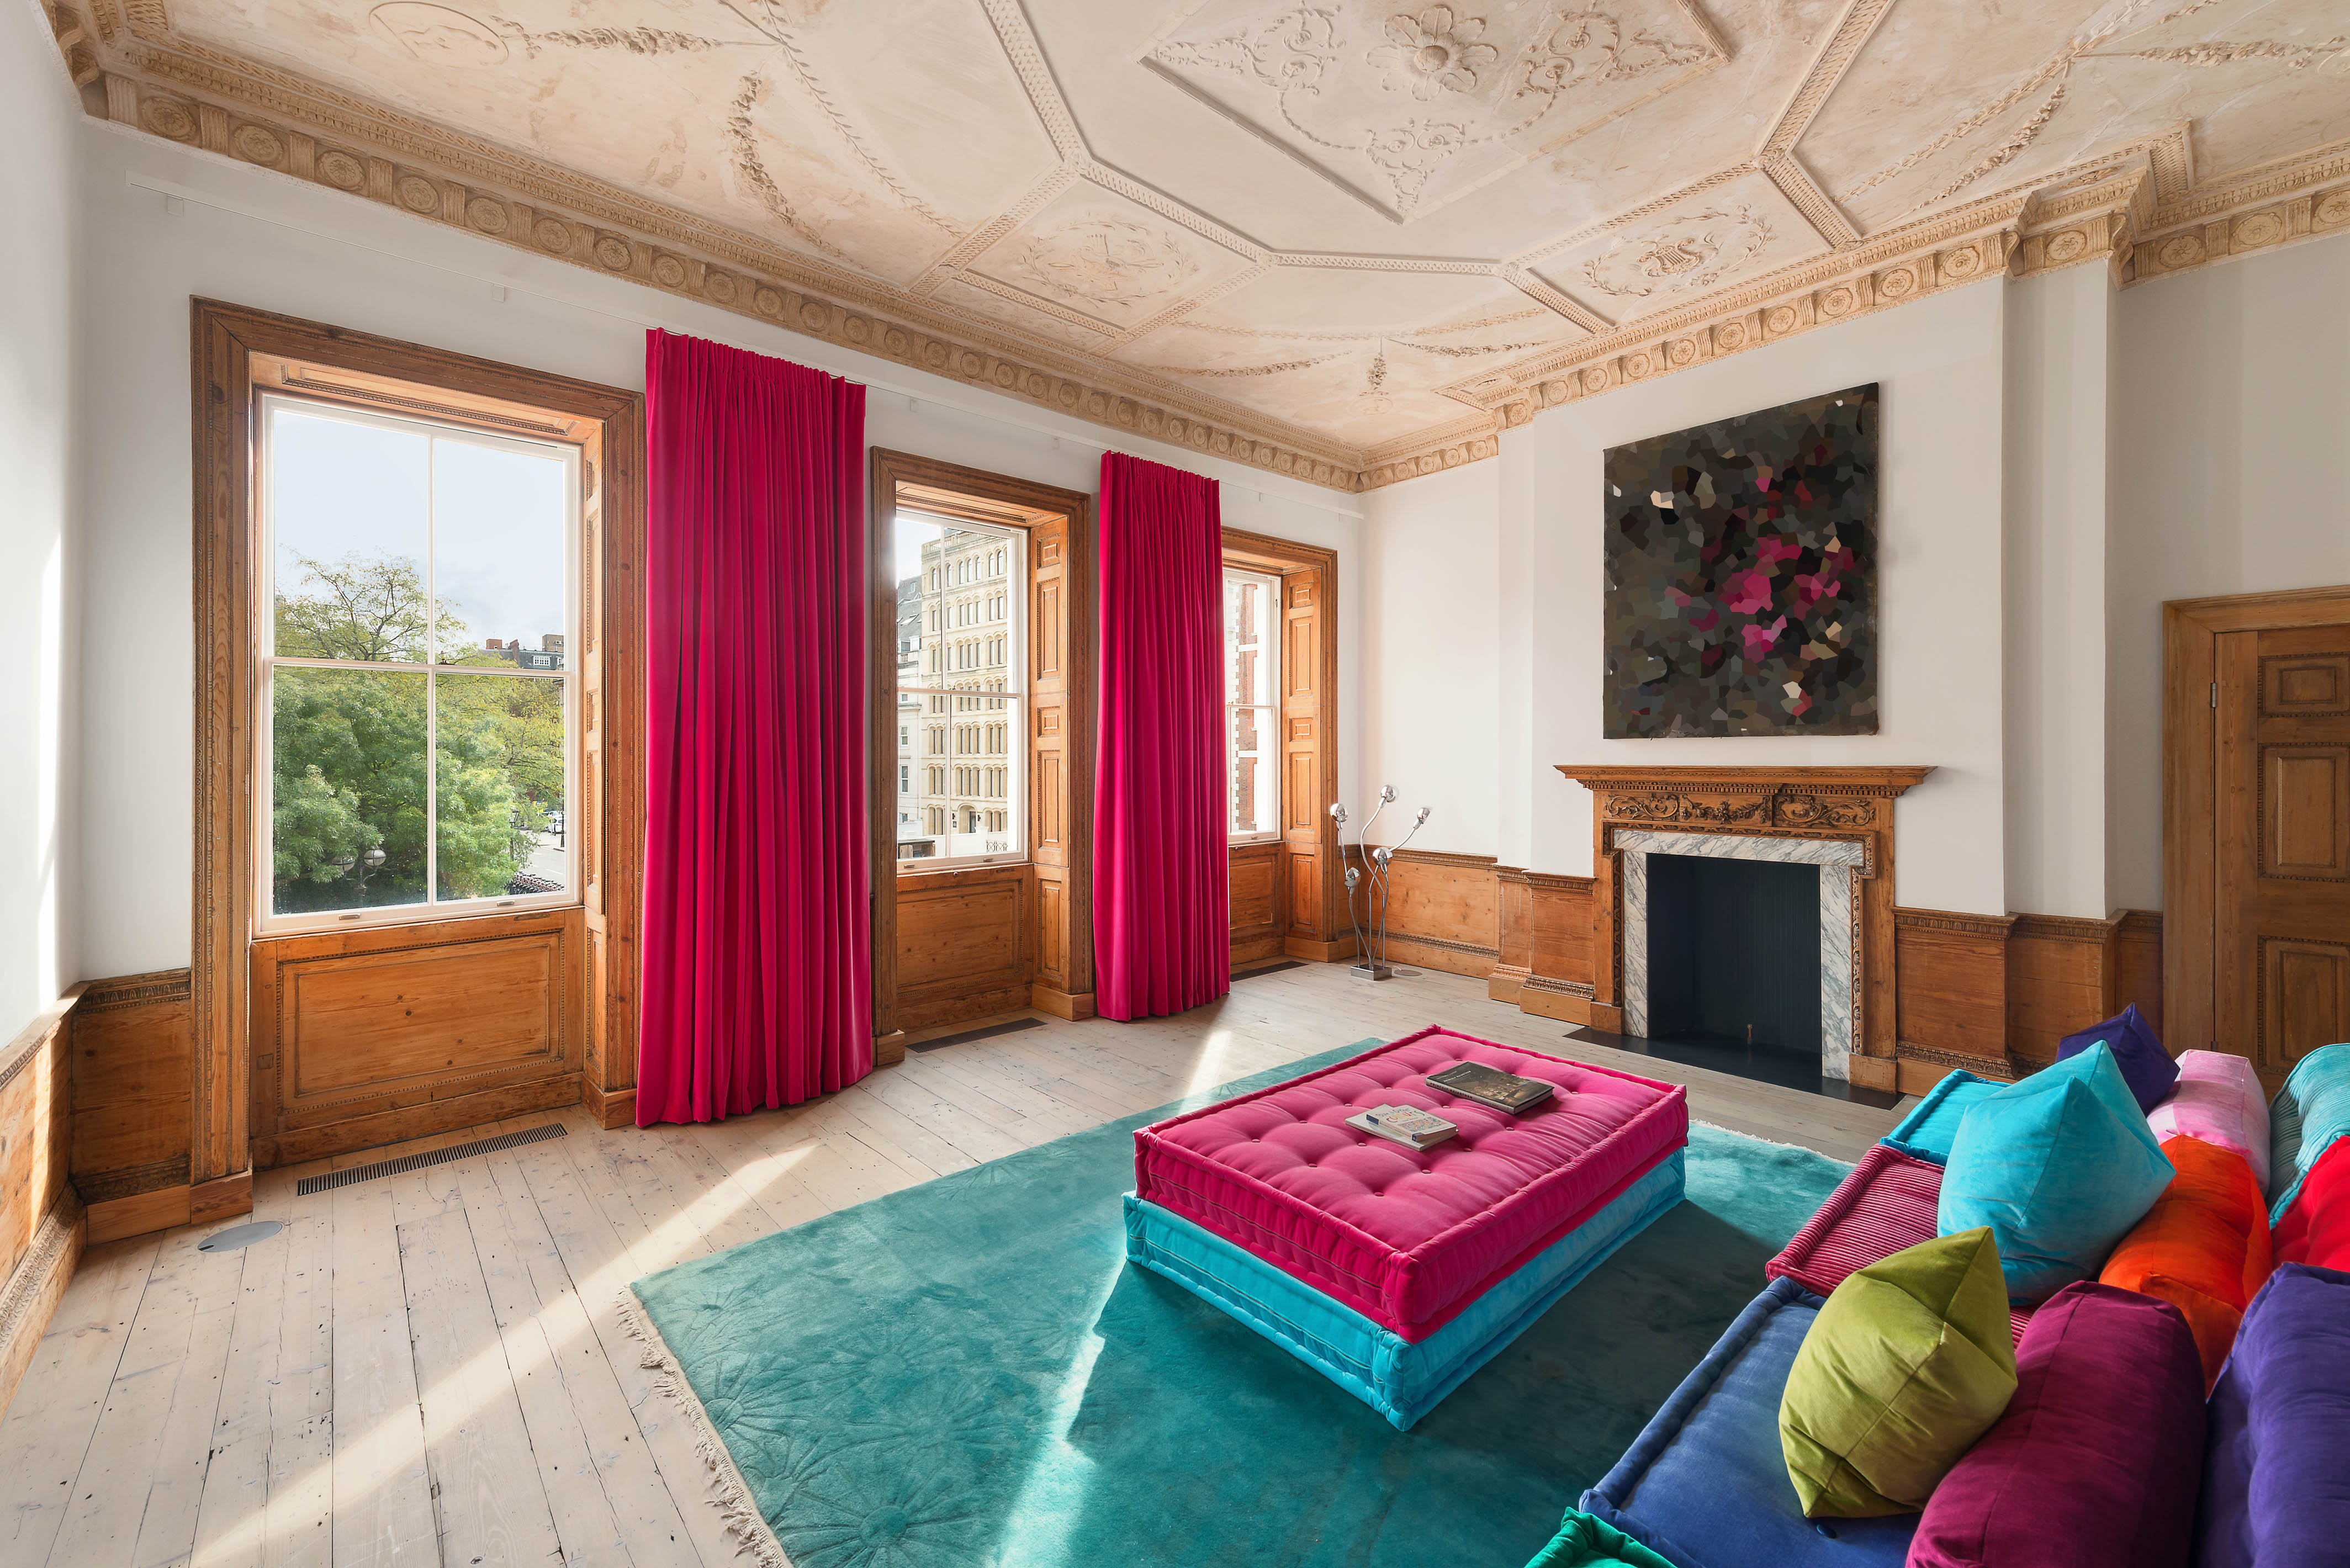 'One of the largest houses in central London' is for sale — and you'll get change from £20 million (but only just) - Country Life